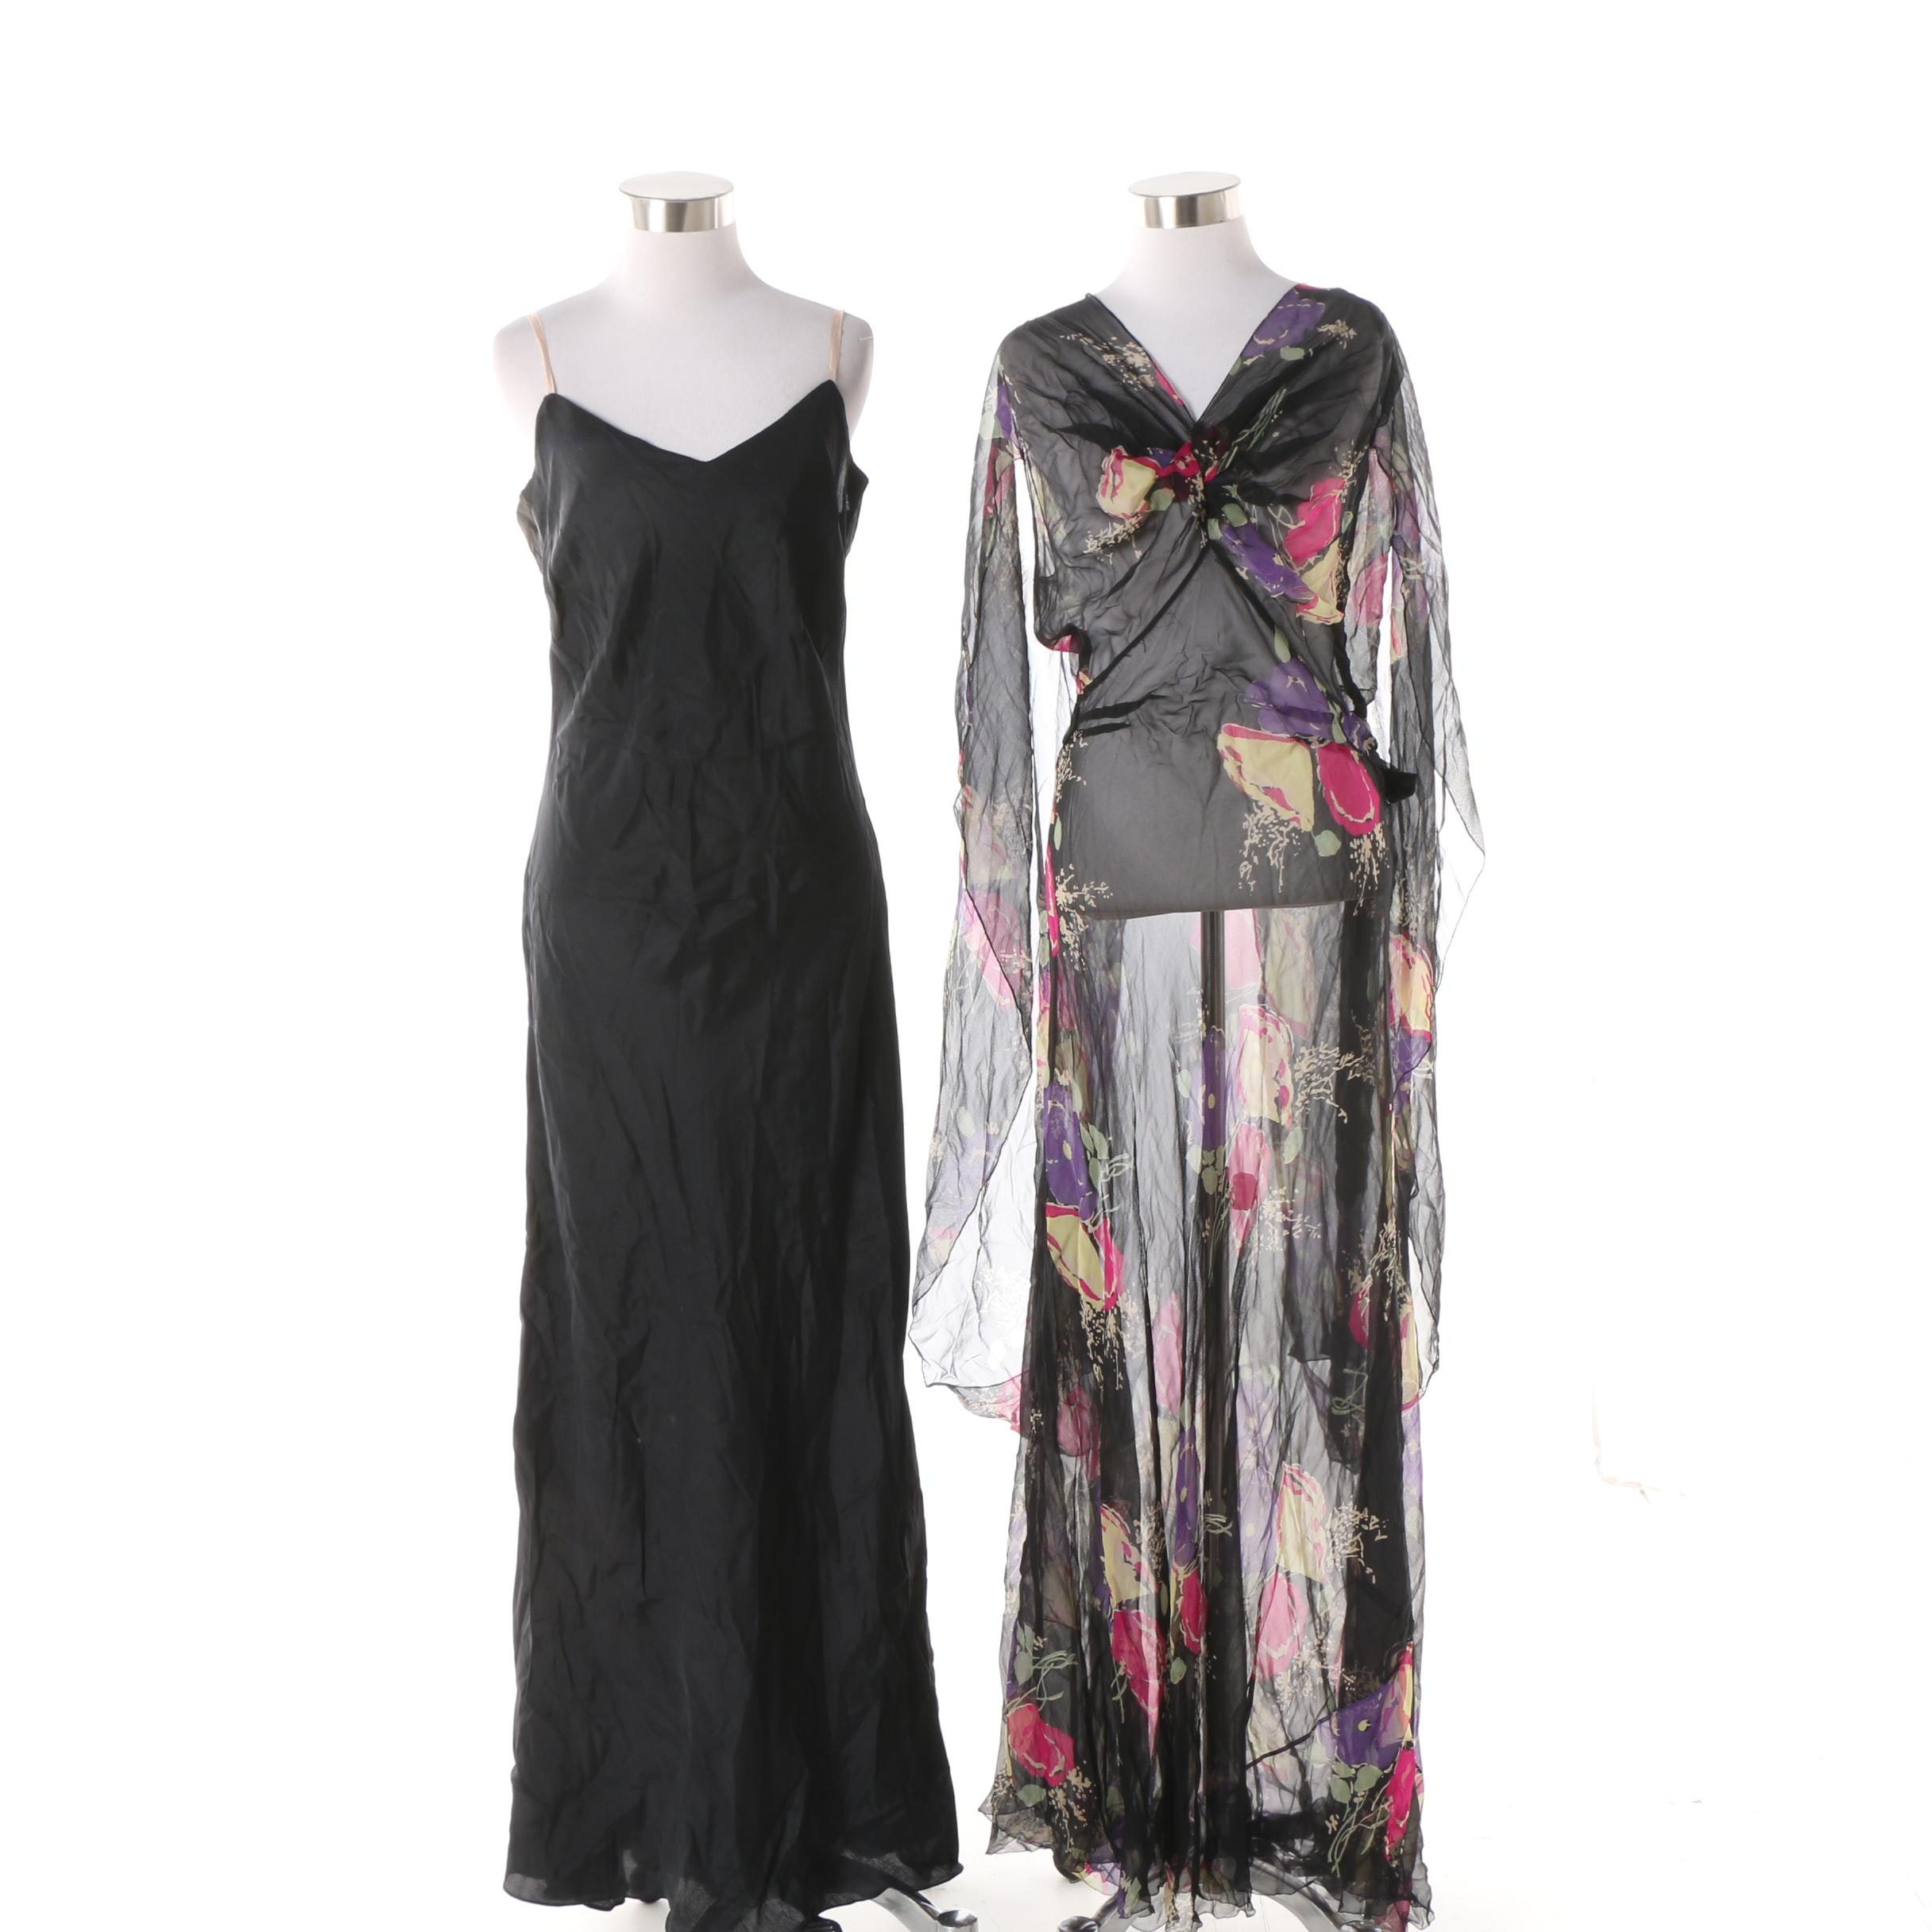 Circa 1970s Sheer Draped Sleeve Floral Print Black Maxi Dress and Slip